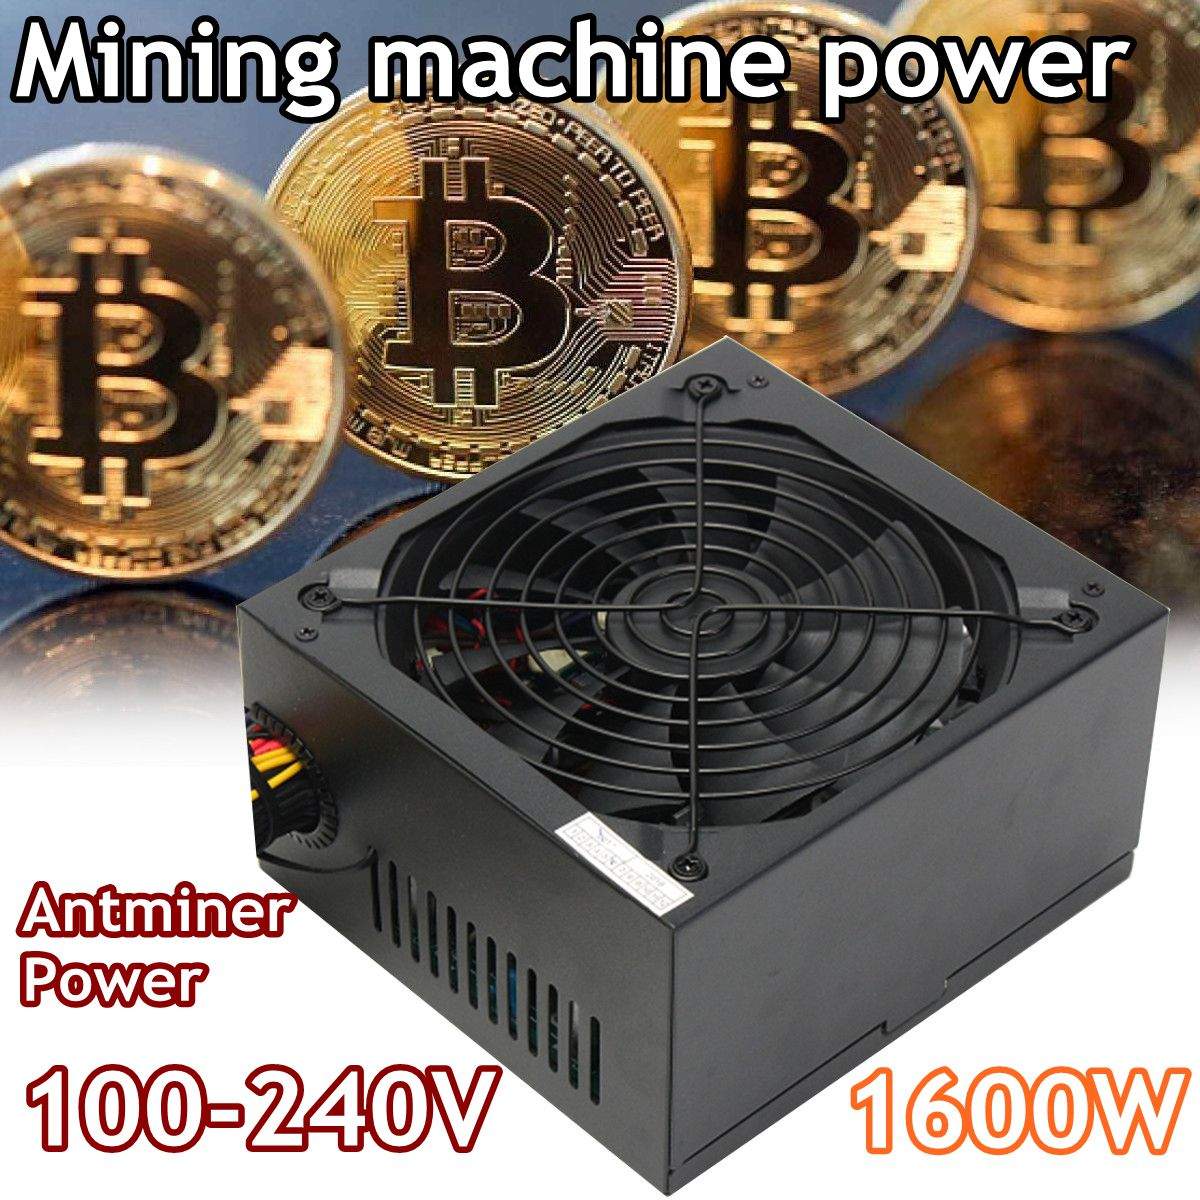 1600W Modular Power Supply For 6 GPU Eth Rig Ethereum Coin Mining Miner Machines High Quality Computer power Supply For BTC 7 2 5 whetstone sharpening stone 8000 3000 knife sharpener oilstone polishing